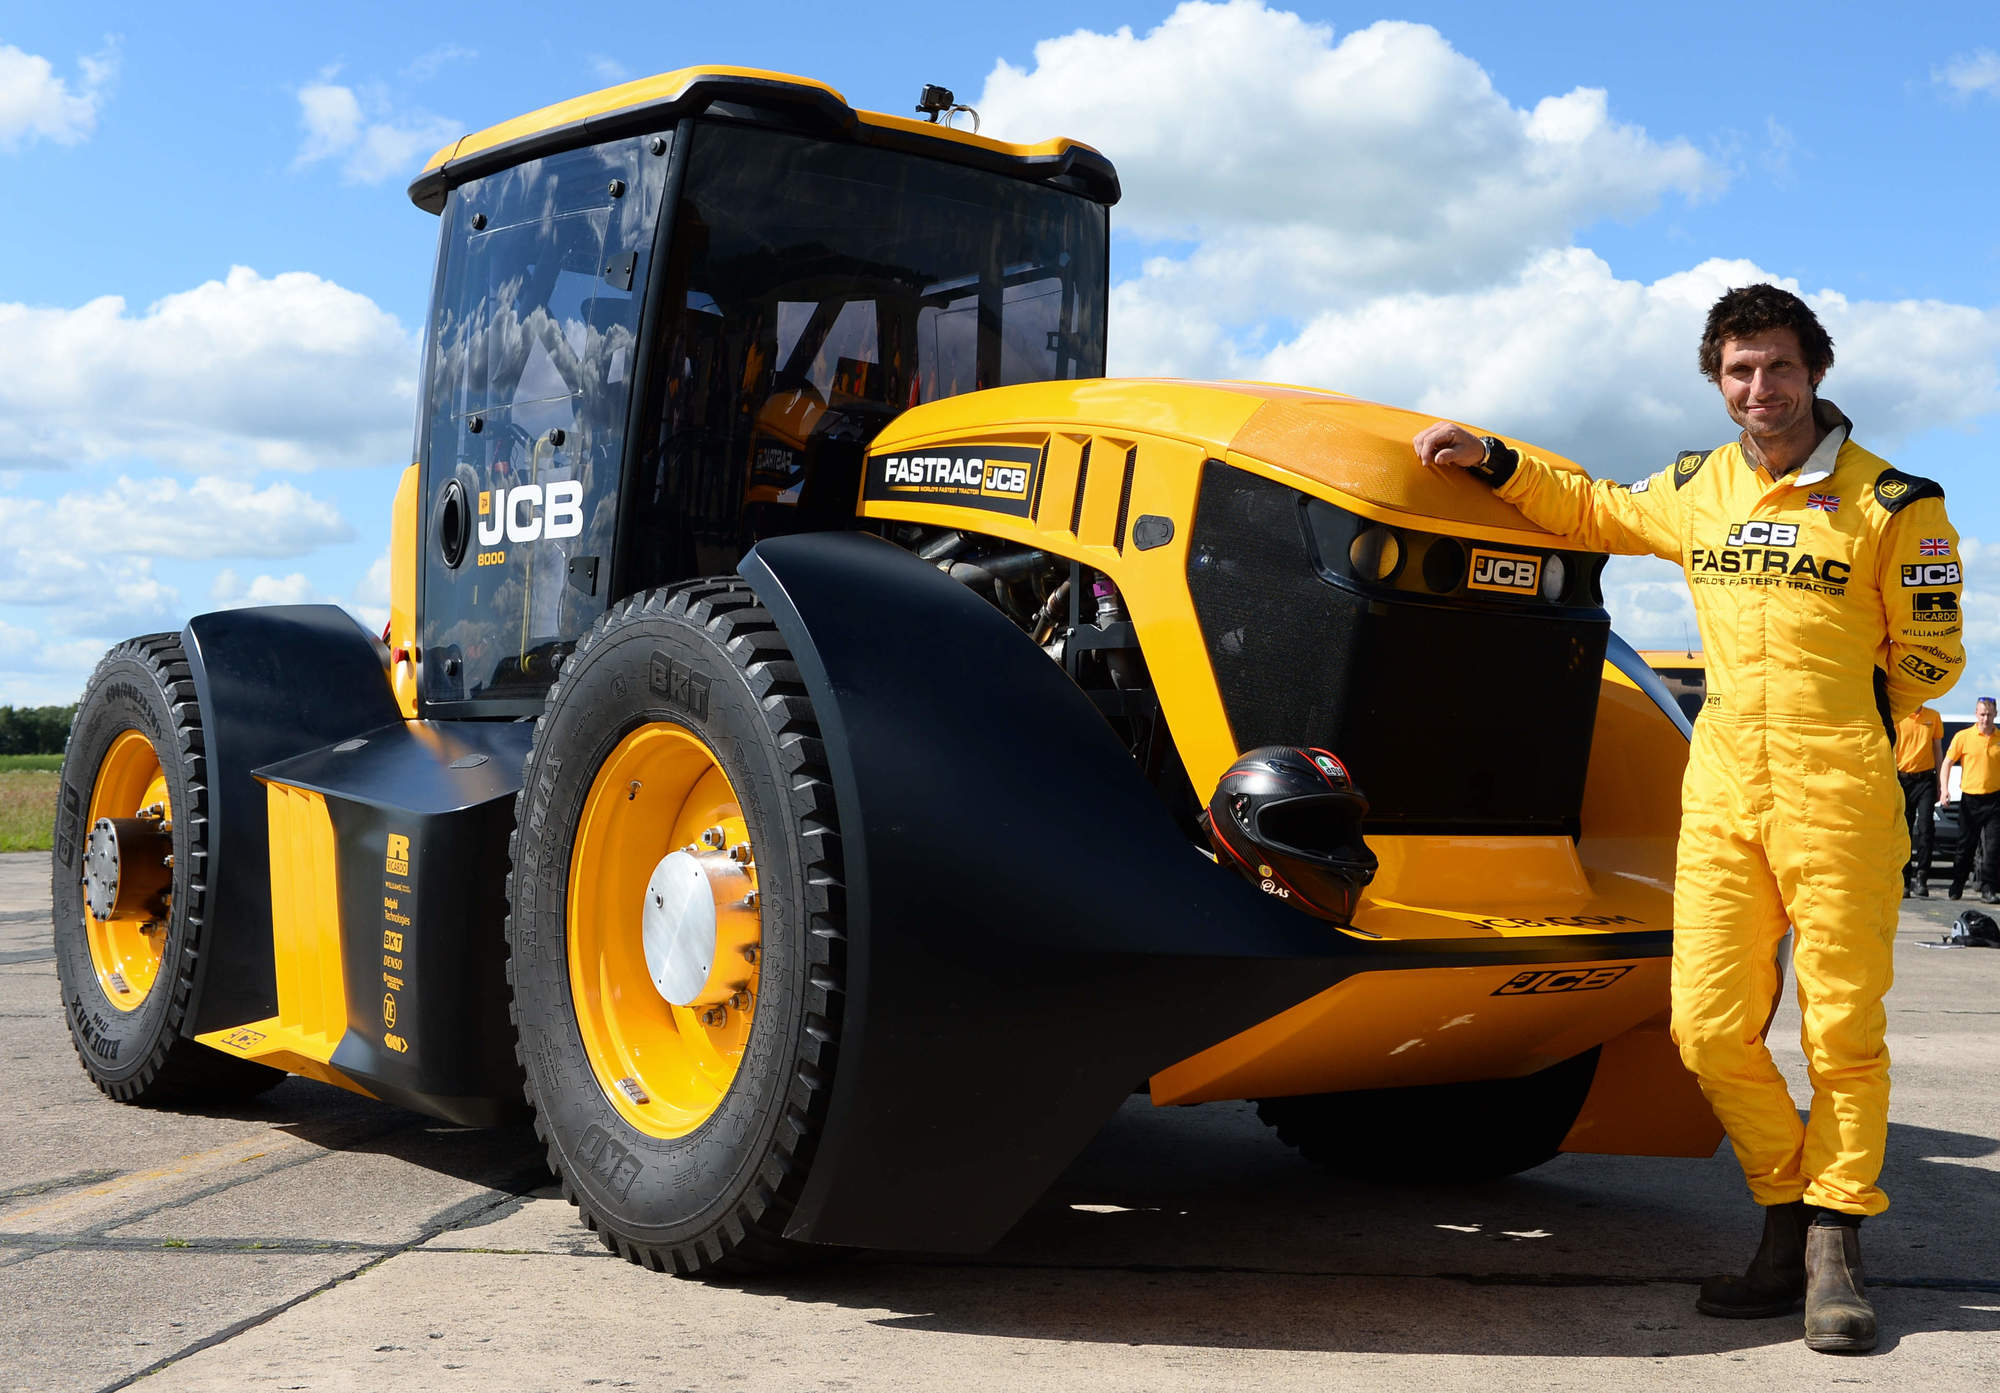 JCB Fastrac Tractor Storms To New British Speed Record